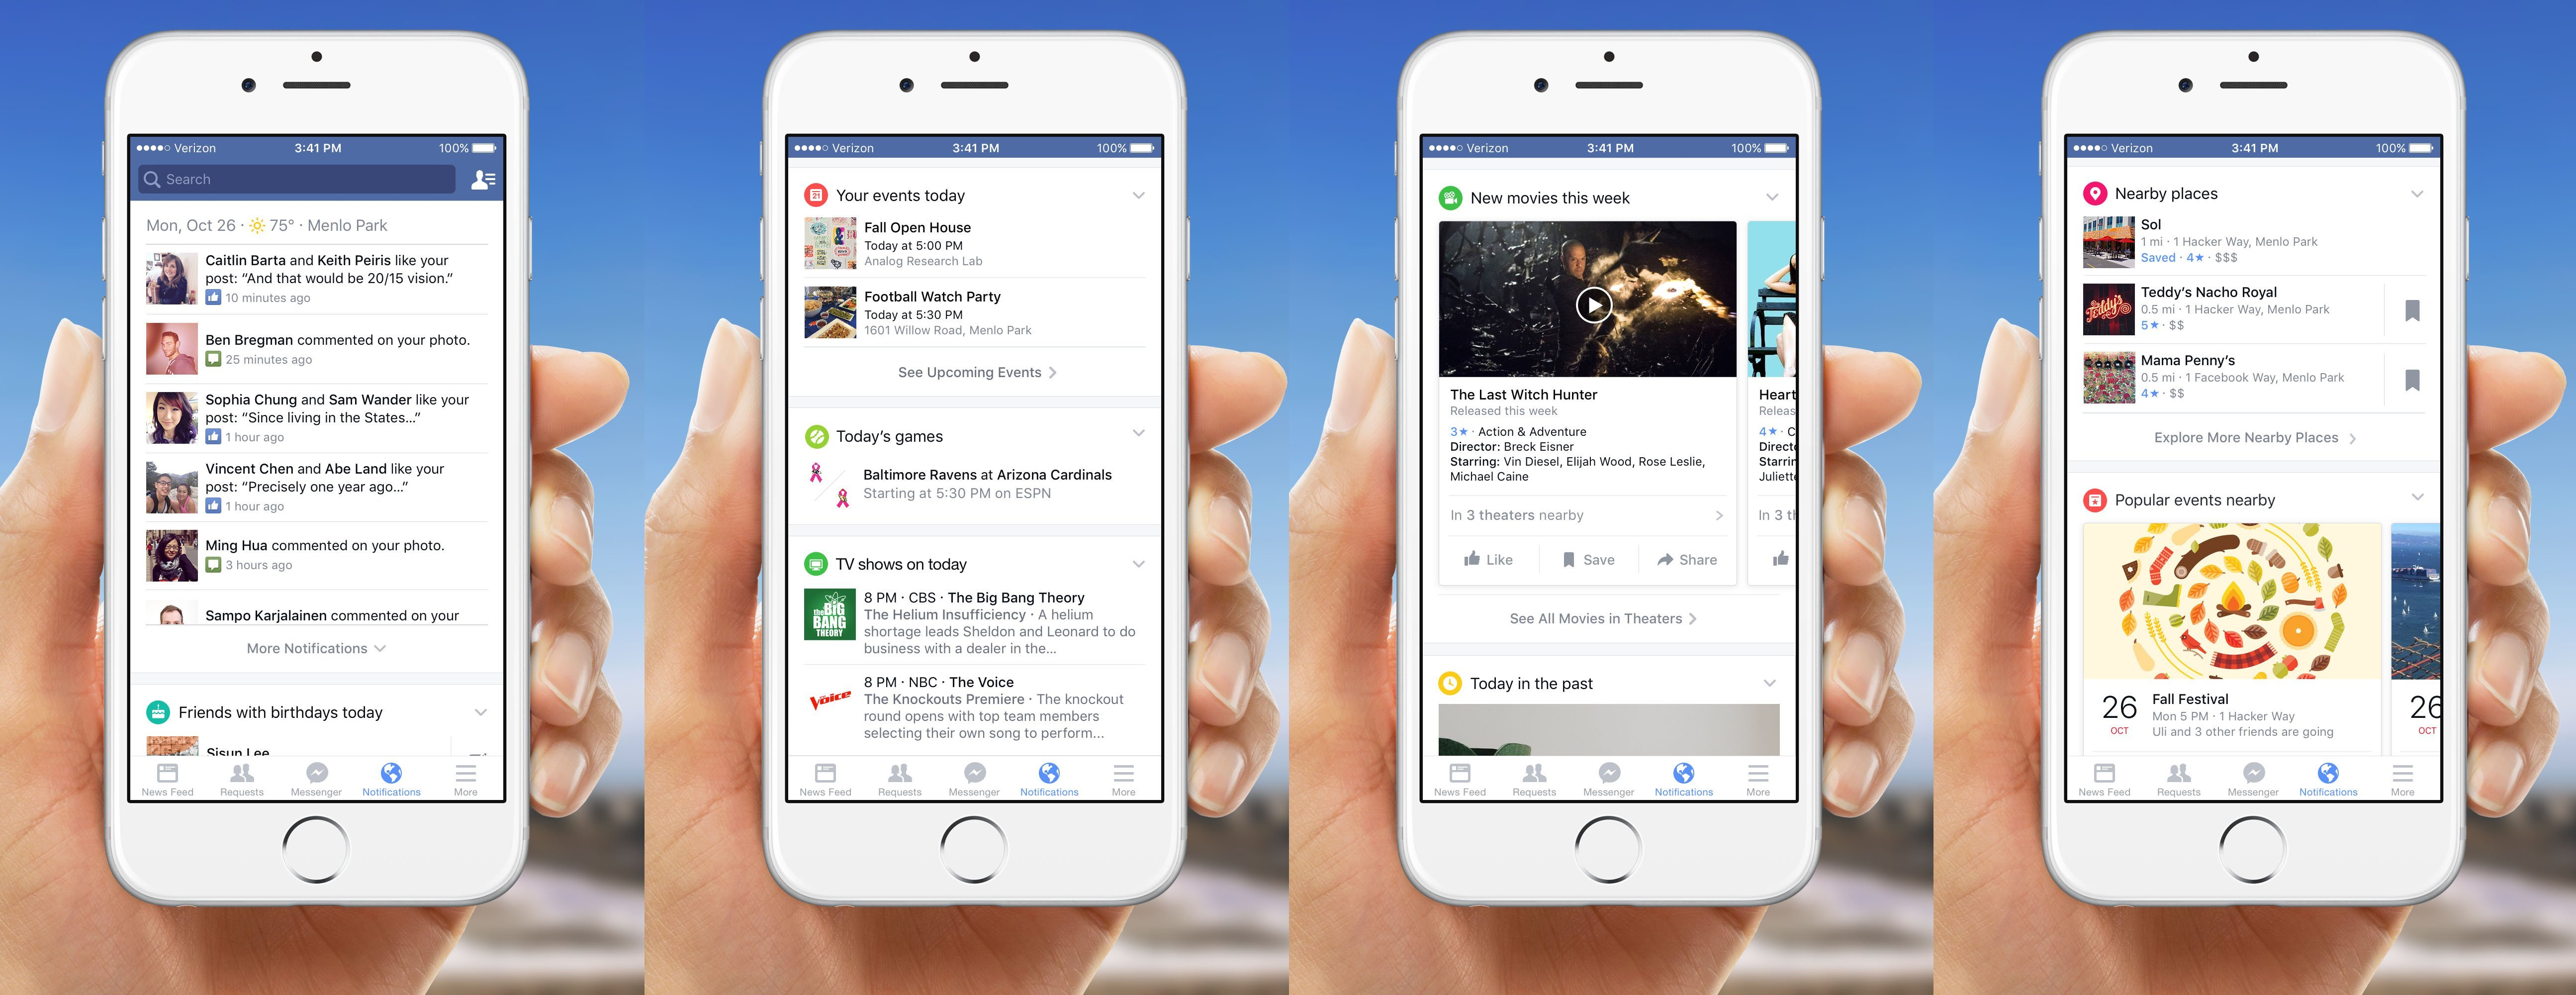 Facebook repense totalement ses notifications